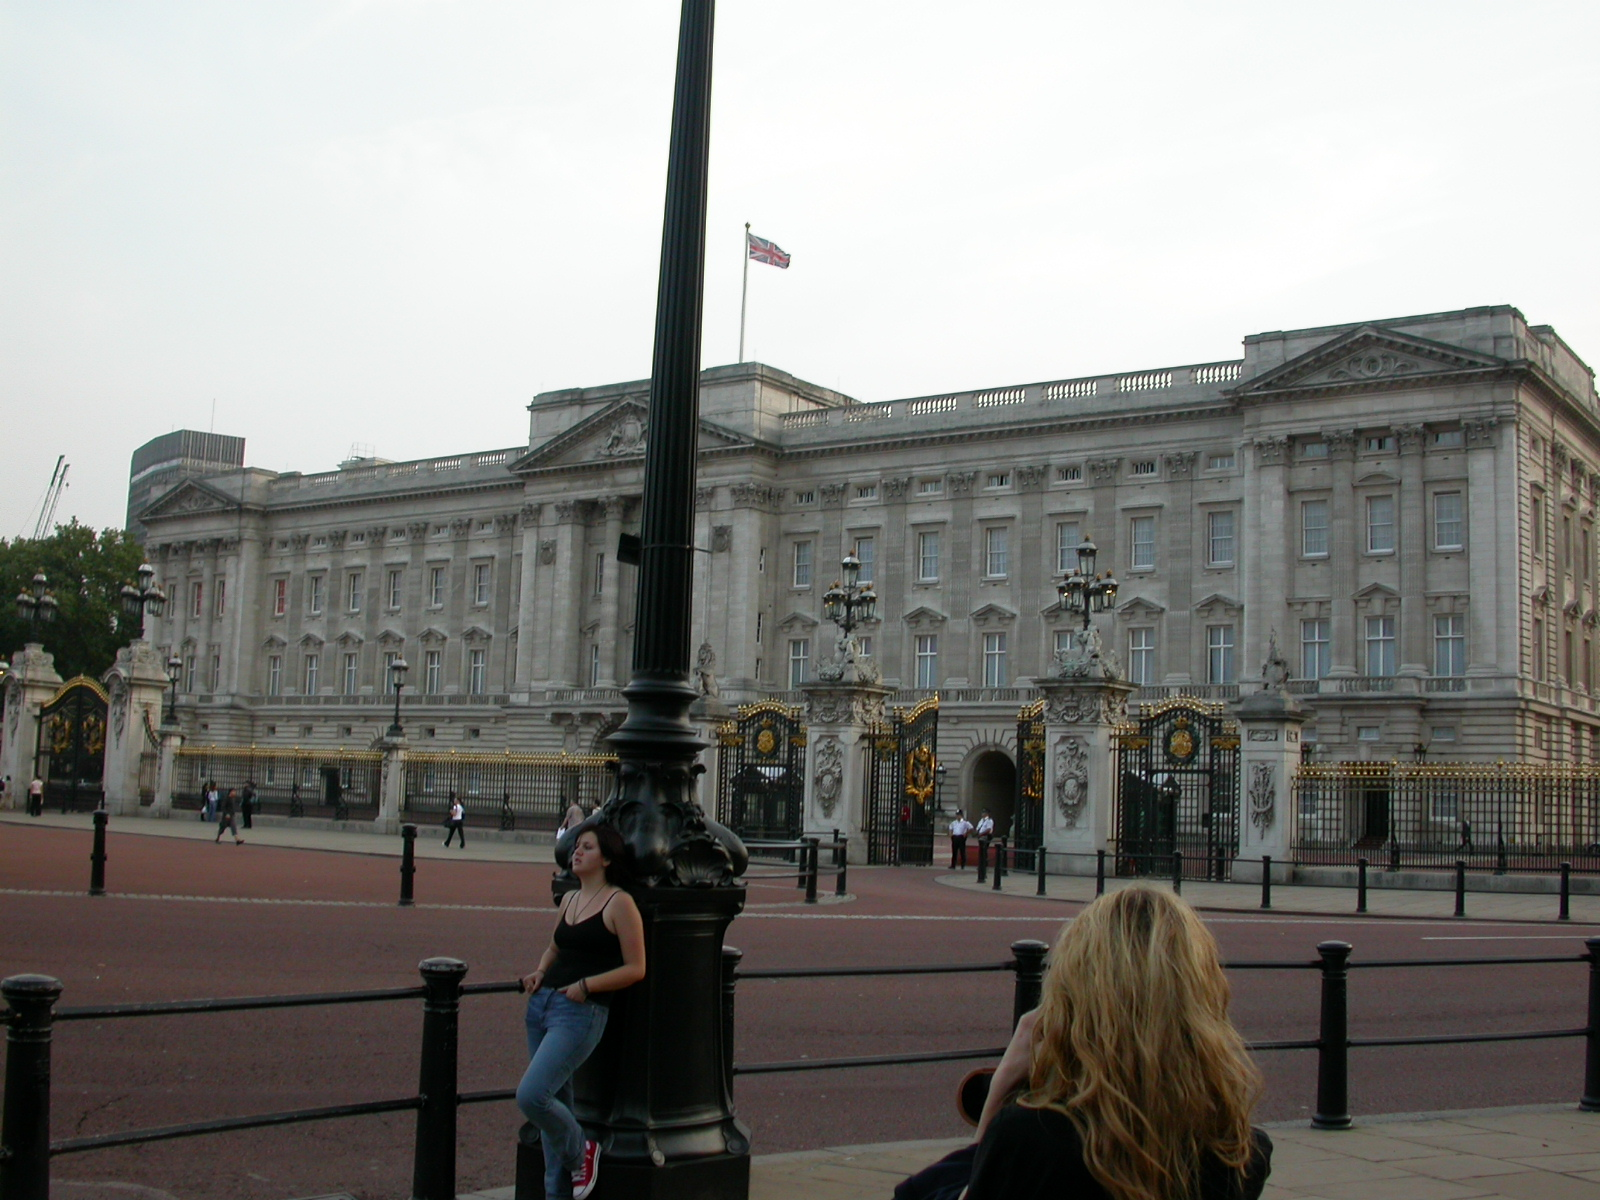 eva buckingham palace london the queen english england britain british monarchy official hi-res